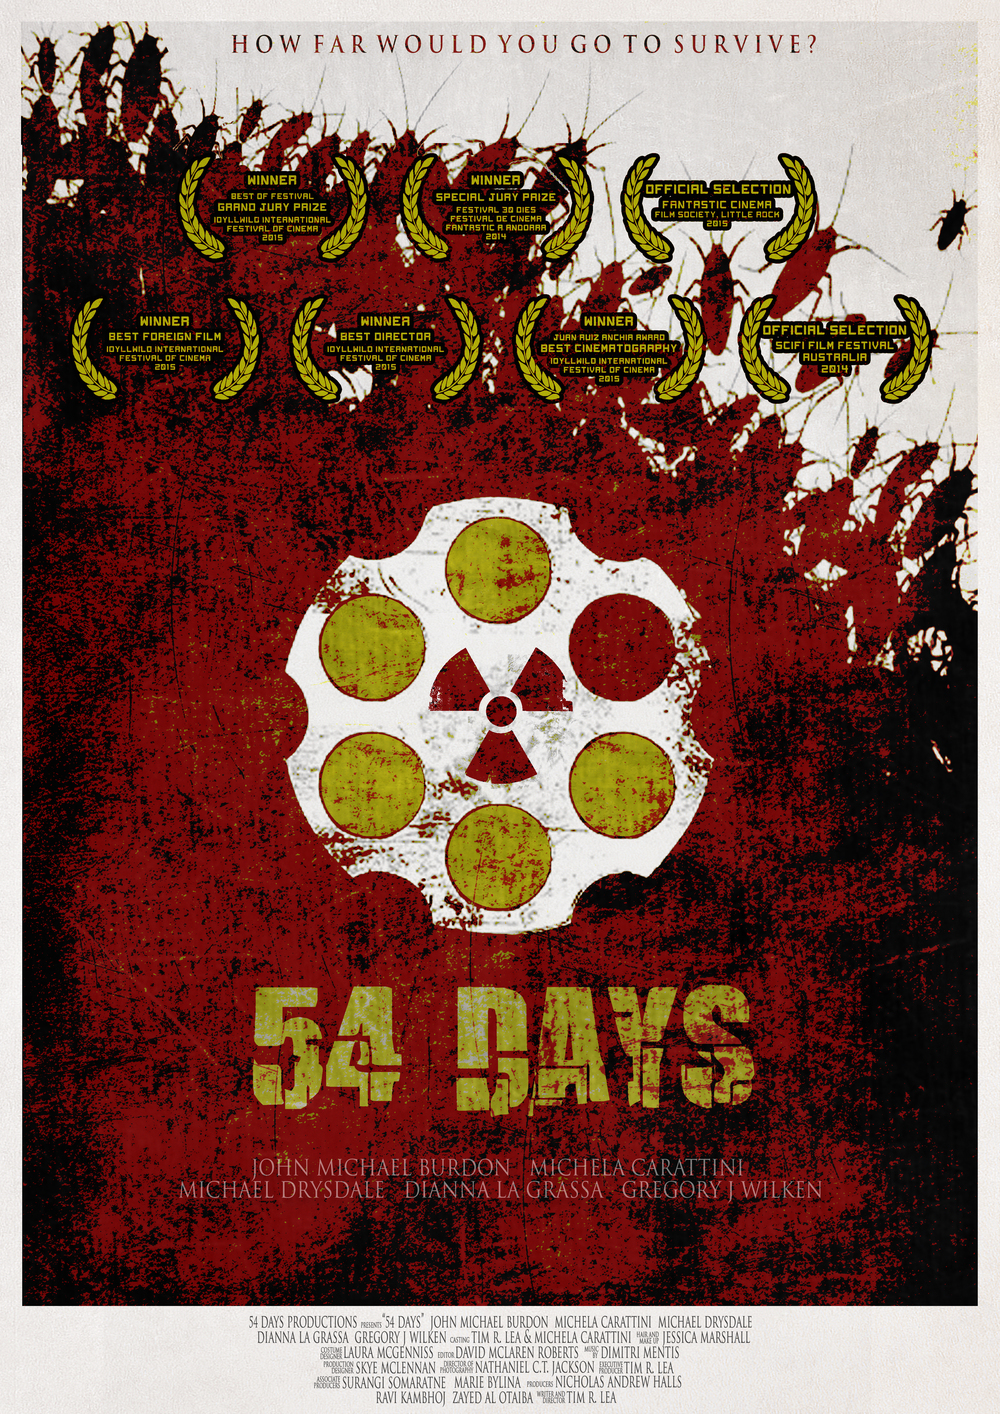 54 Days   - 84 mins -   Psychological Thriller, Australia   Directed by Tim R. Lea  REGIONAL PREMIERE  Synopsis:   A well-to-do Sydney party disintegrates into chaos and panic when a bomb goes off forcing 5 friends into a 1960's nuclear shelter. As food and water runs out they are forced to make an impossible decision - either one dies or they all die.    Facebook     Twitter